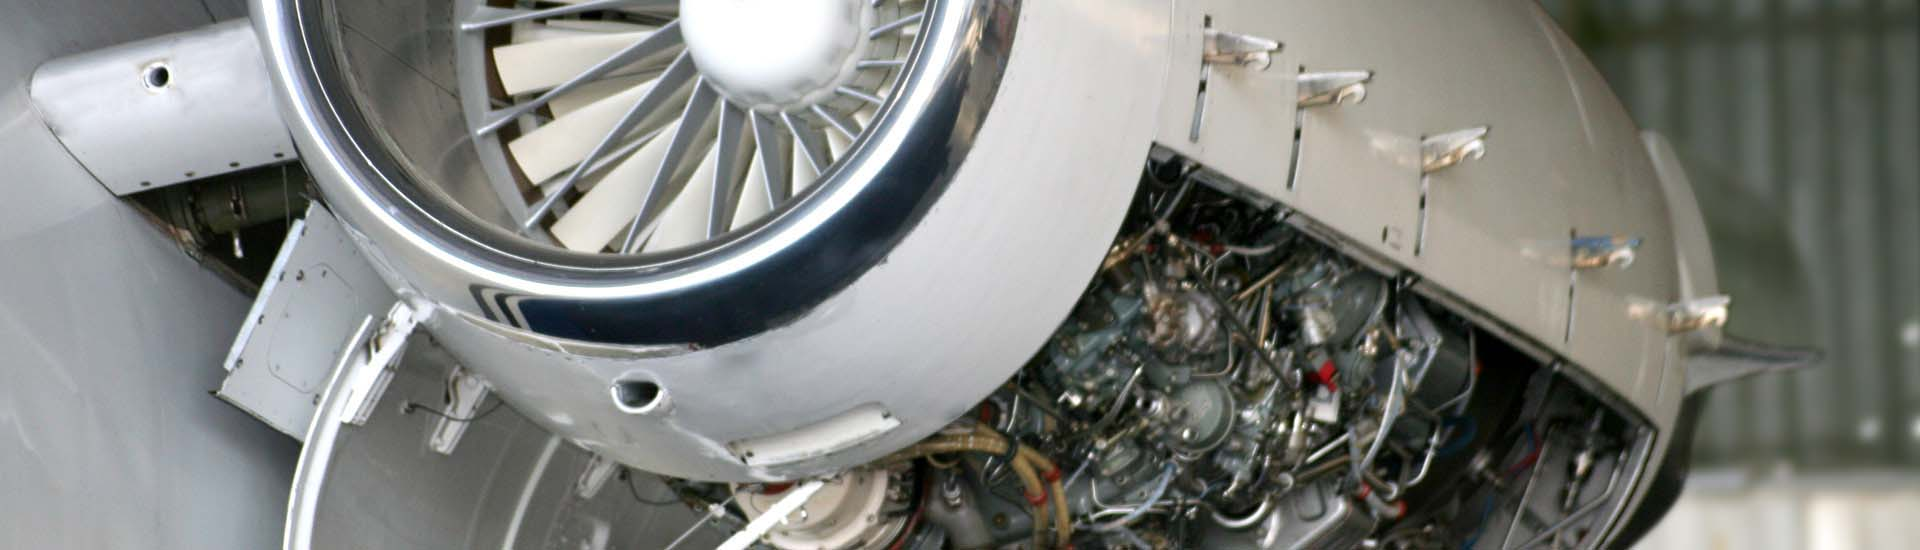 engine-maintenance-flyzienith - Air charter